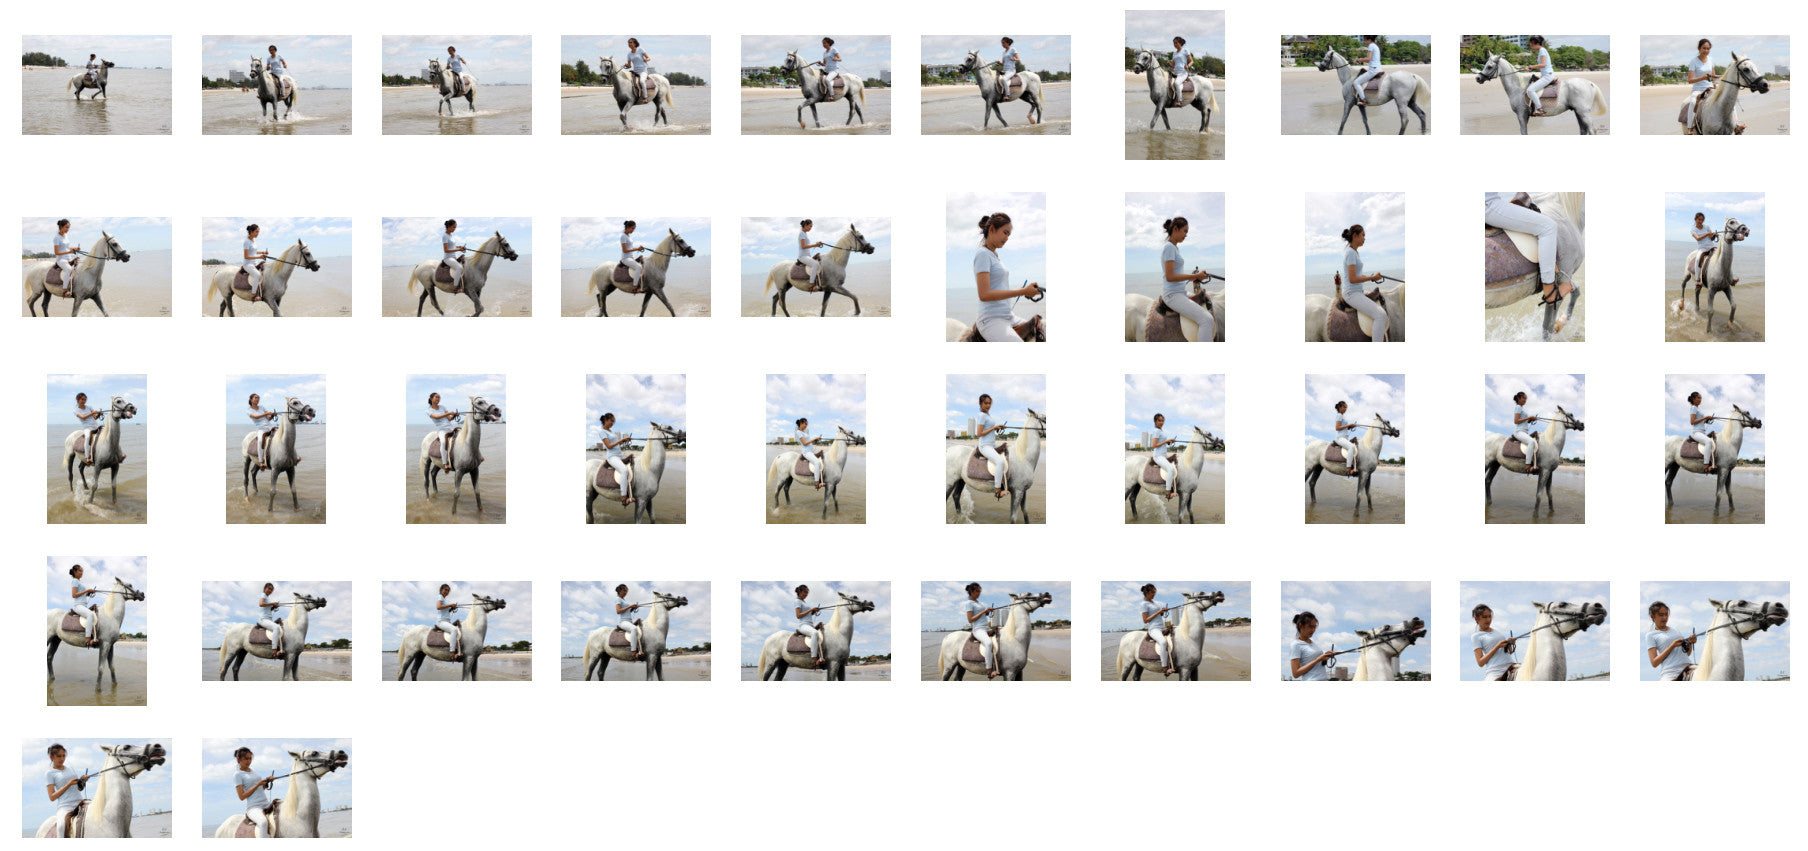 Som in Jodhpurs Riding with Saddle on White Arabian Horse, Part 3 - Riding.Vision